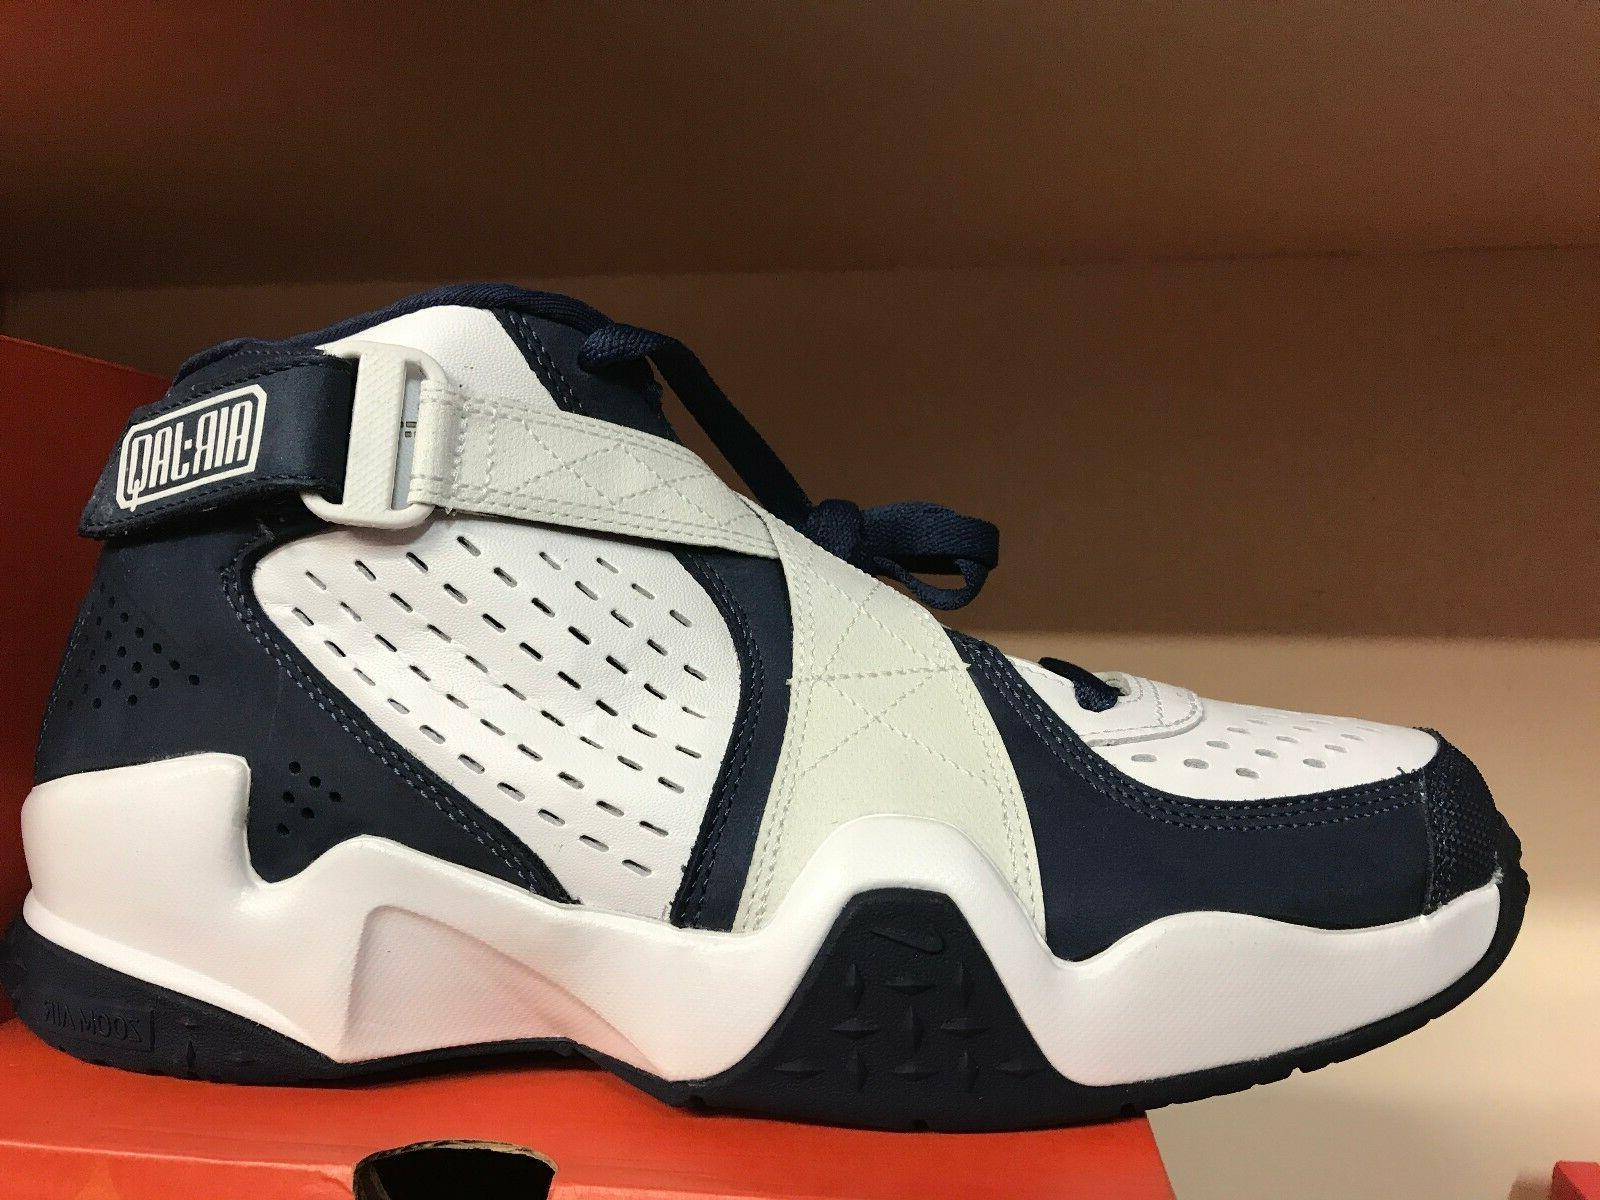 2005 vintage ds air jaq basketball shoes